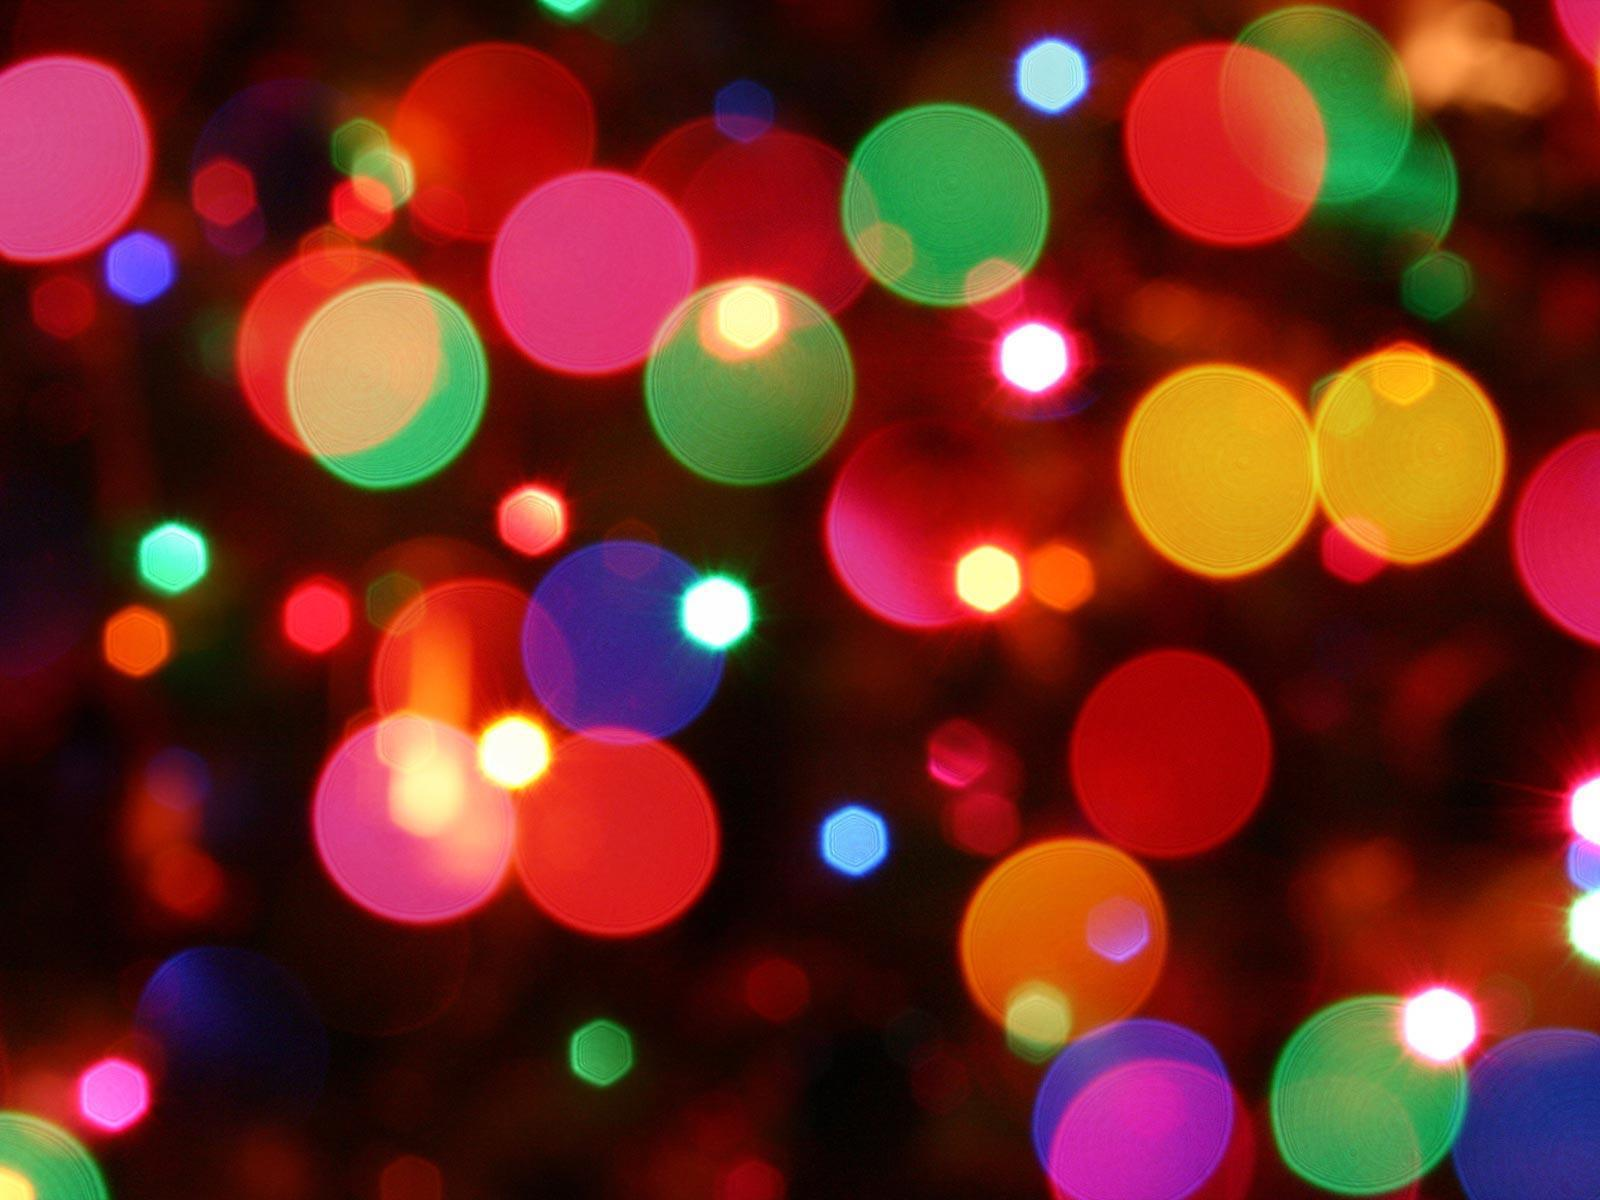 Desktop wallpapers holiday free - Free Holiday Desktop Wallpapers Www Wallpaper Free Download Com